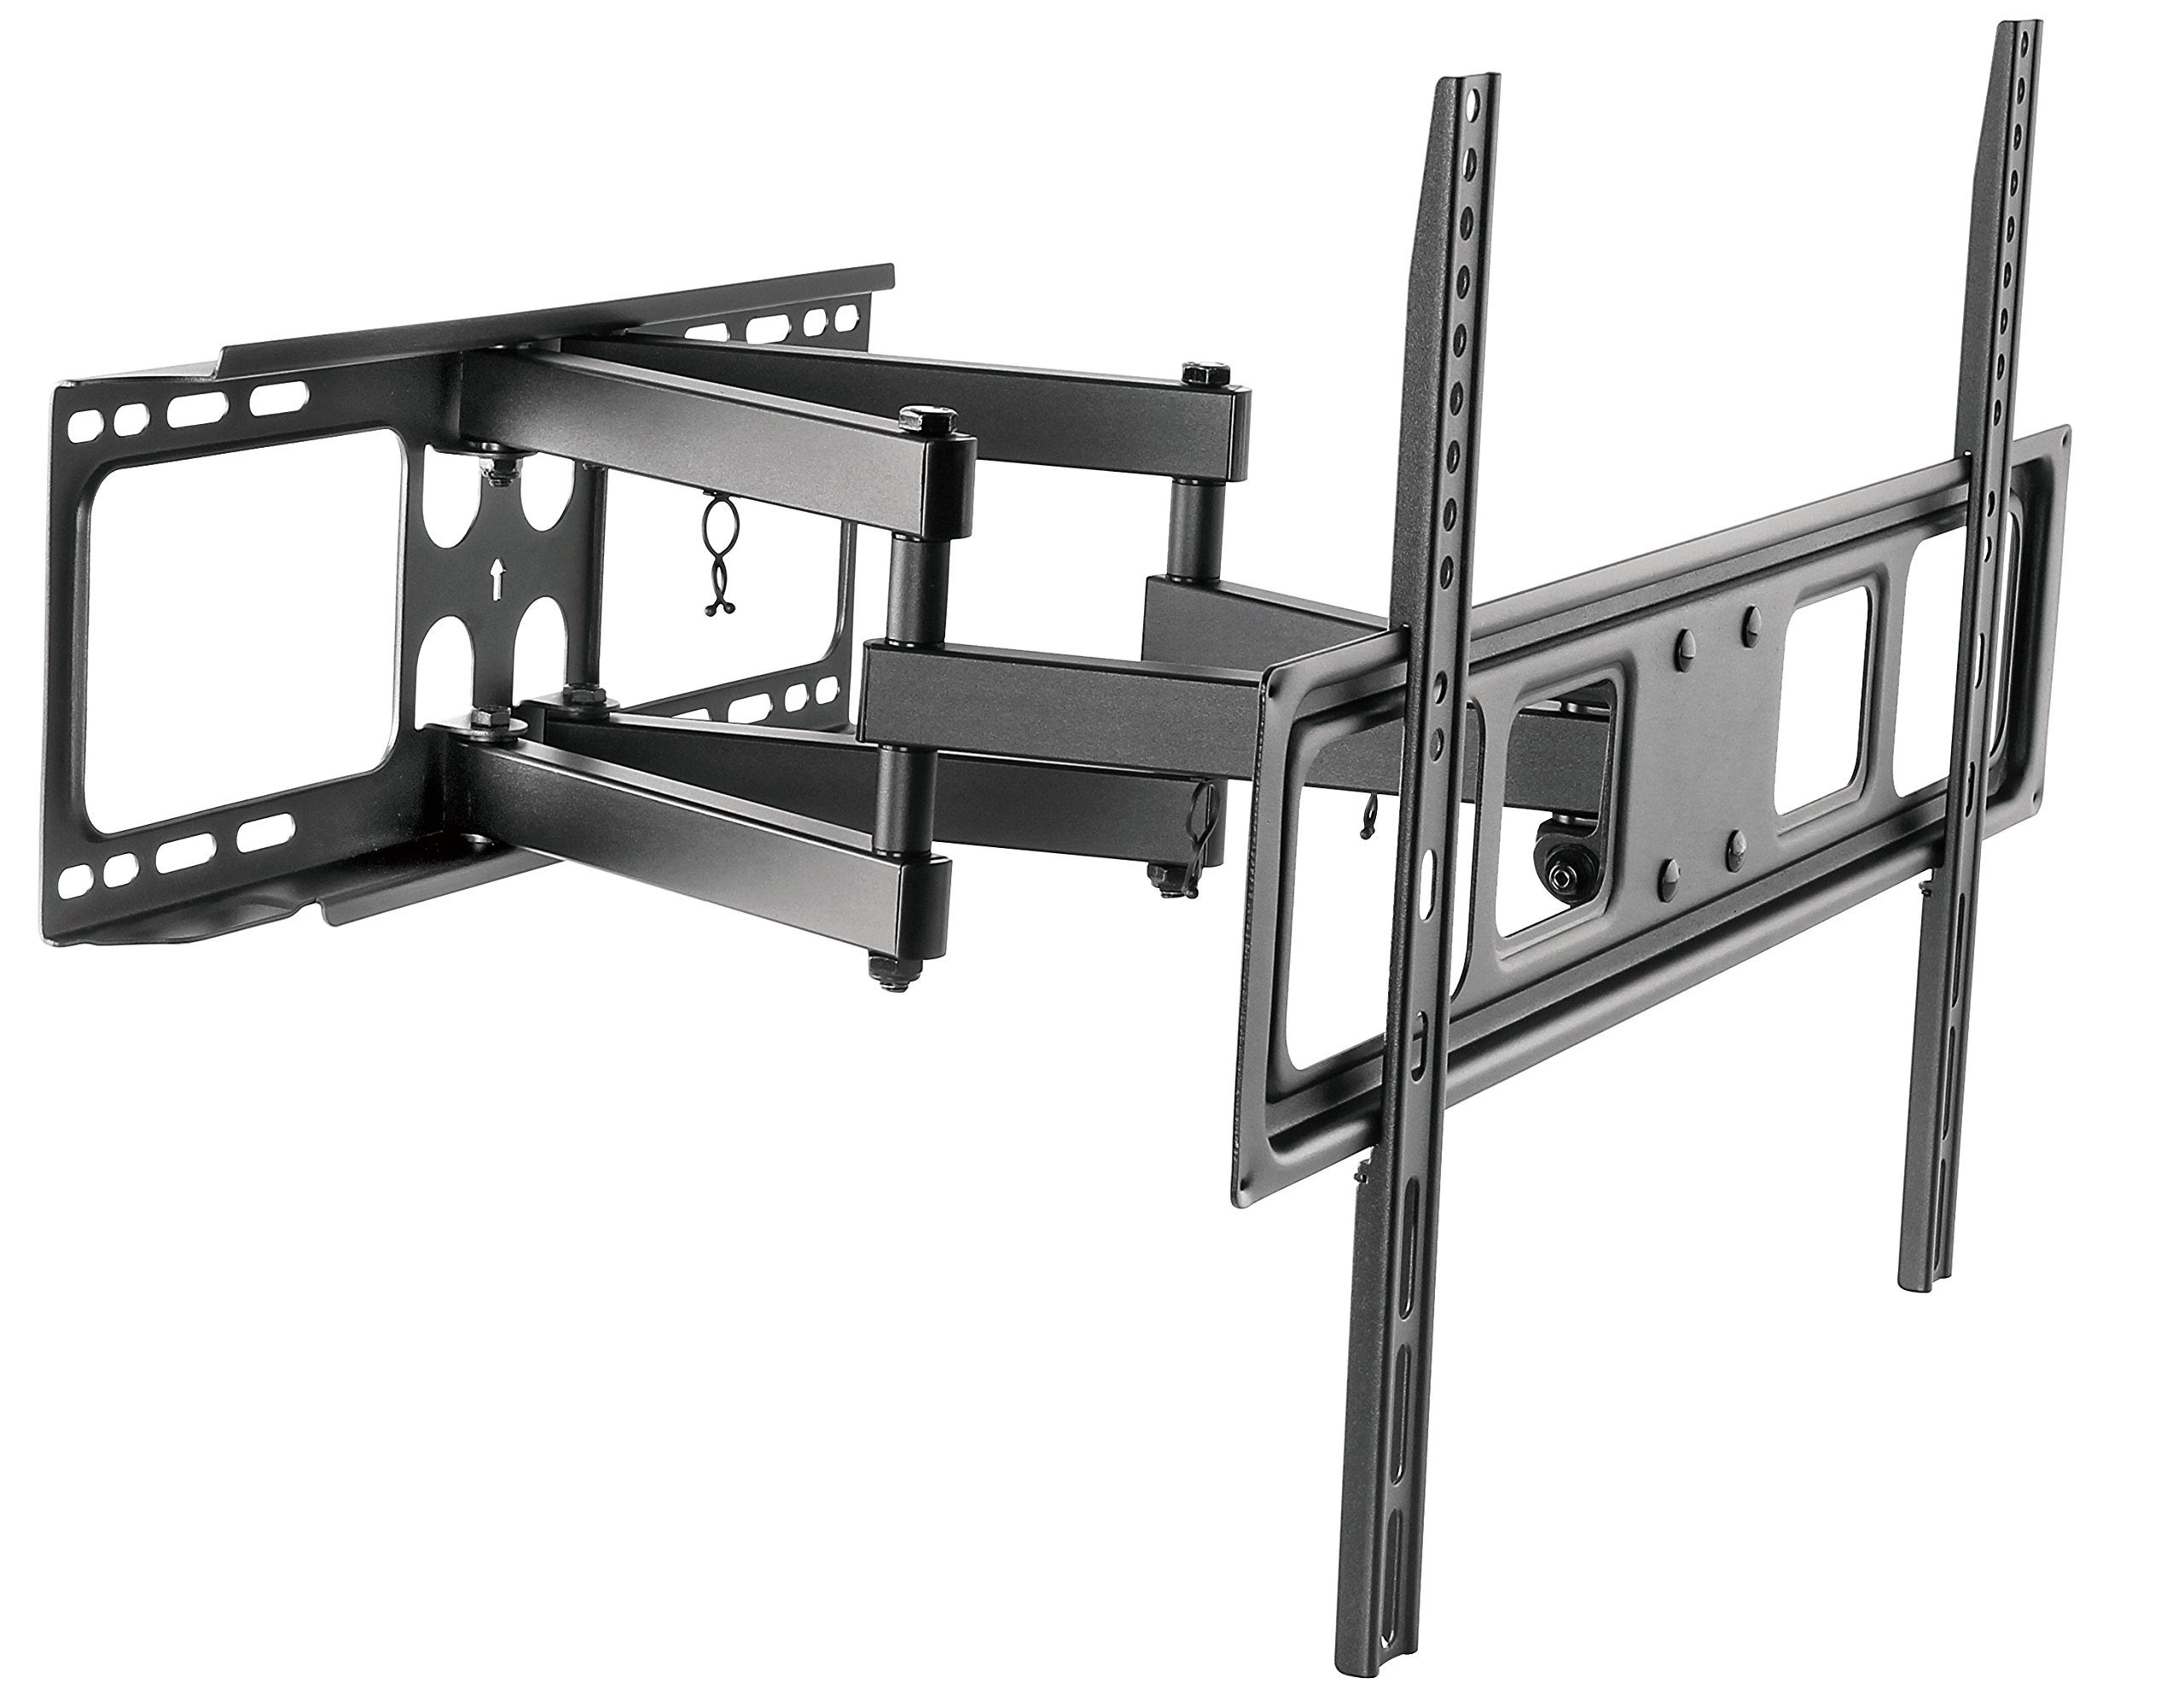 Husky Mount Full Motion TV Wall Mount Bracket Fits Most 32''-70'' LED LCD Flat Screen Up to 88 lbs by Husky Mounts